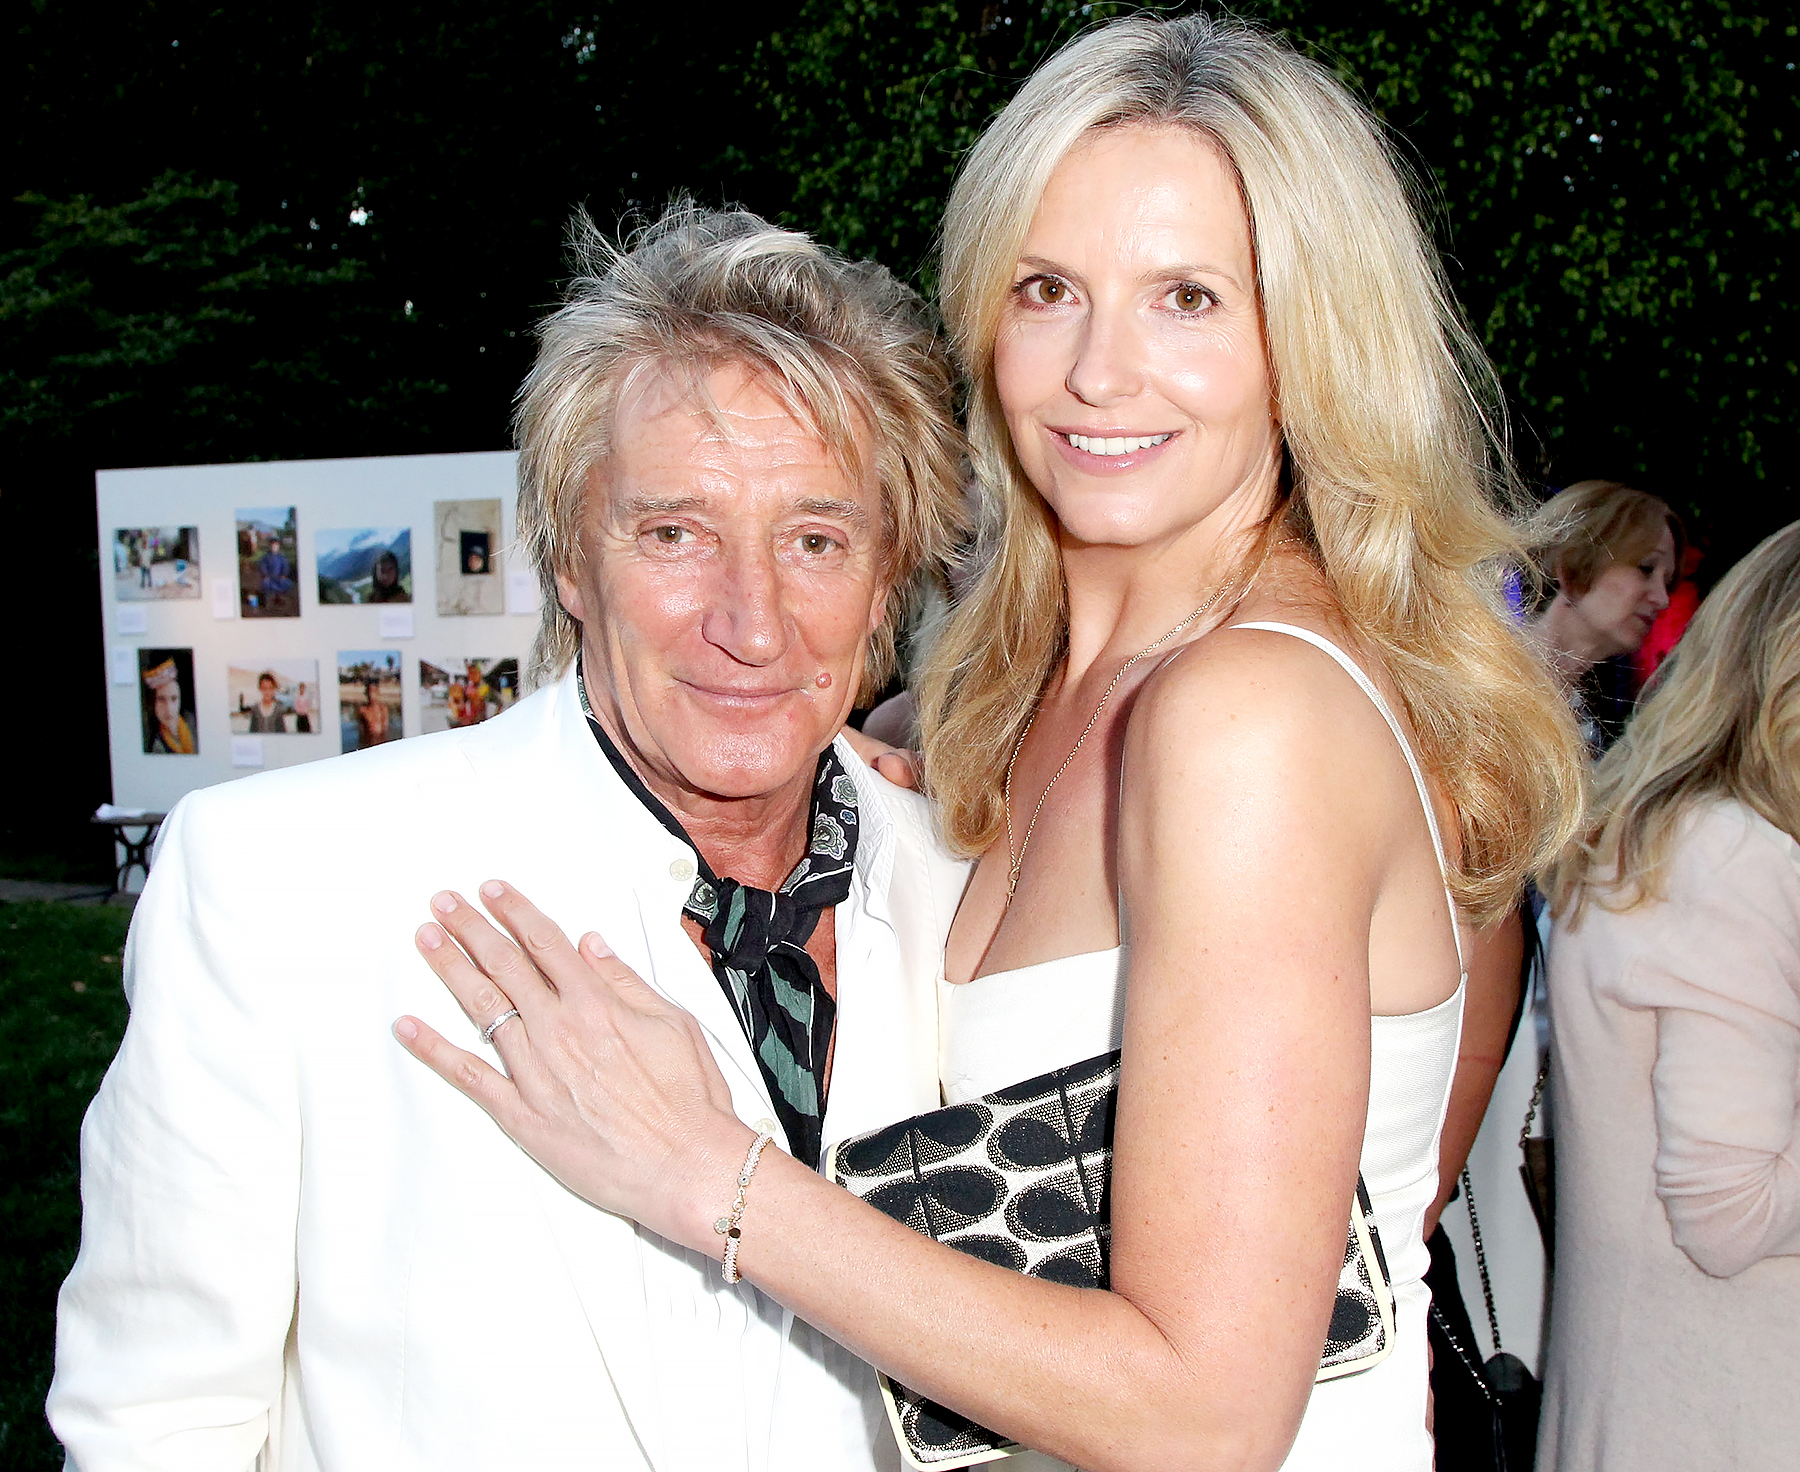 Rod Stewart and Penny Lancaster attend the Theirworld & Astley Clarke summer reception in celebration of charitable partnership at the private residence of the British Consul General in Los Angeles on June 2, 2015 in Los Angeles, California.